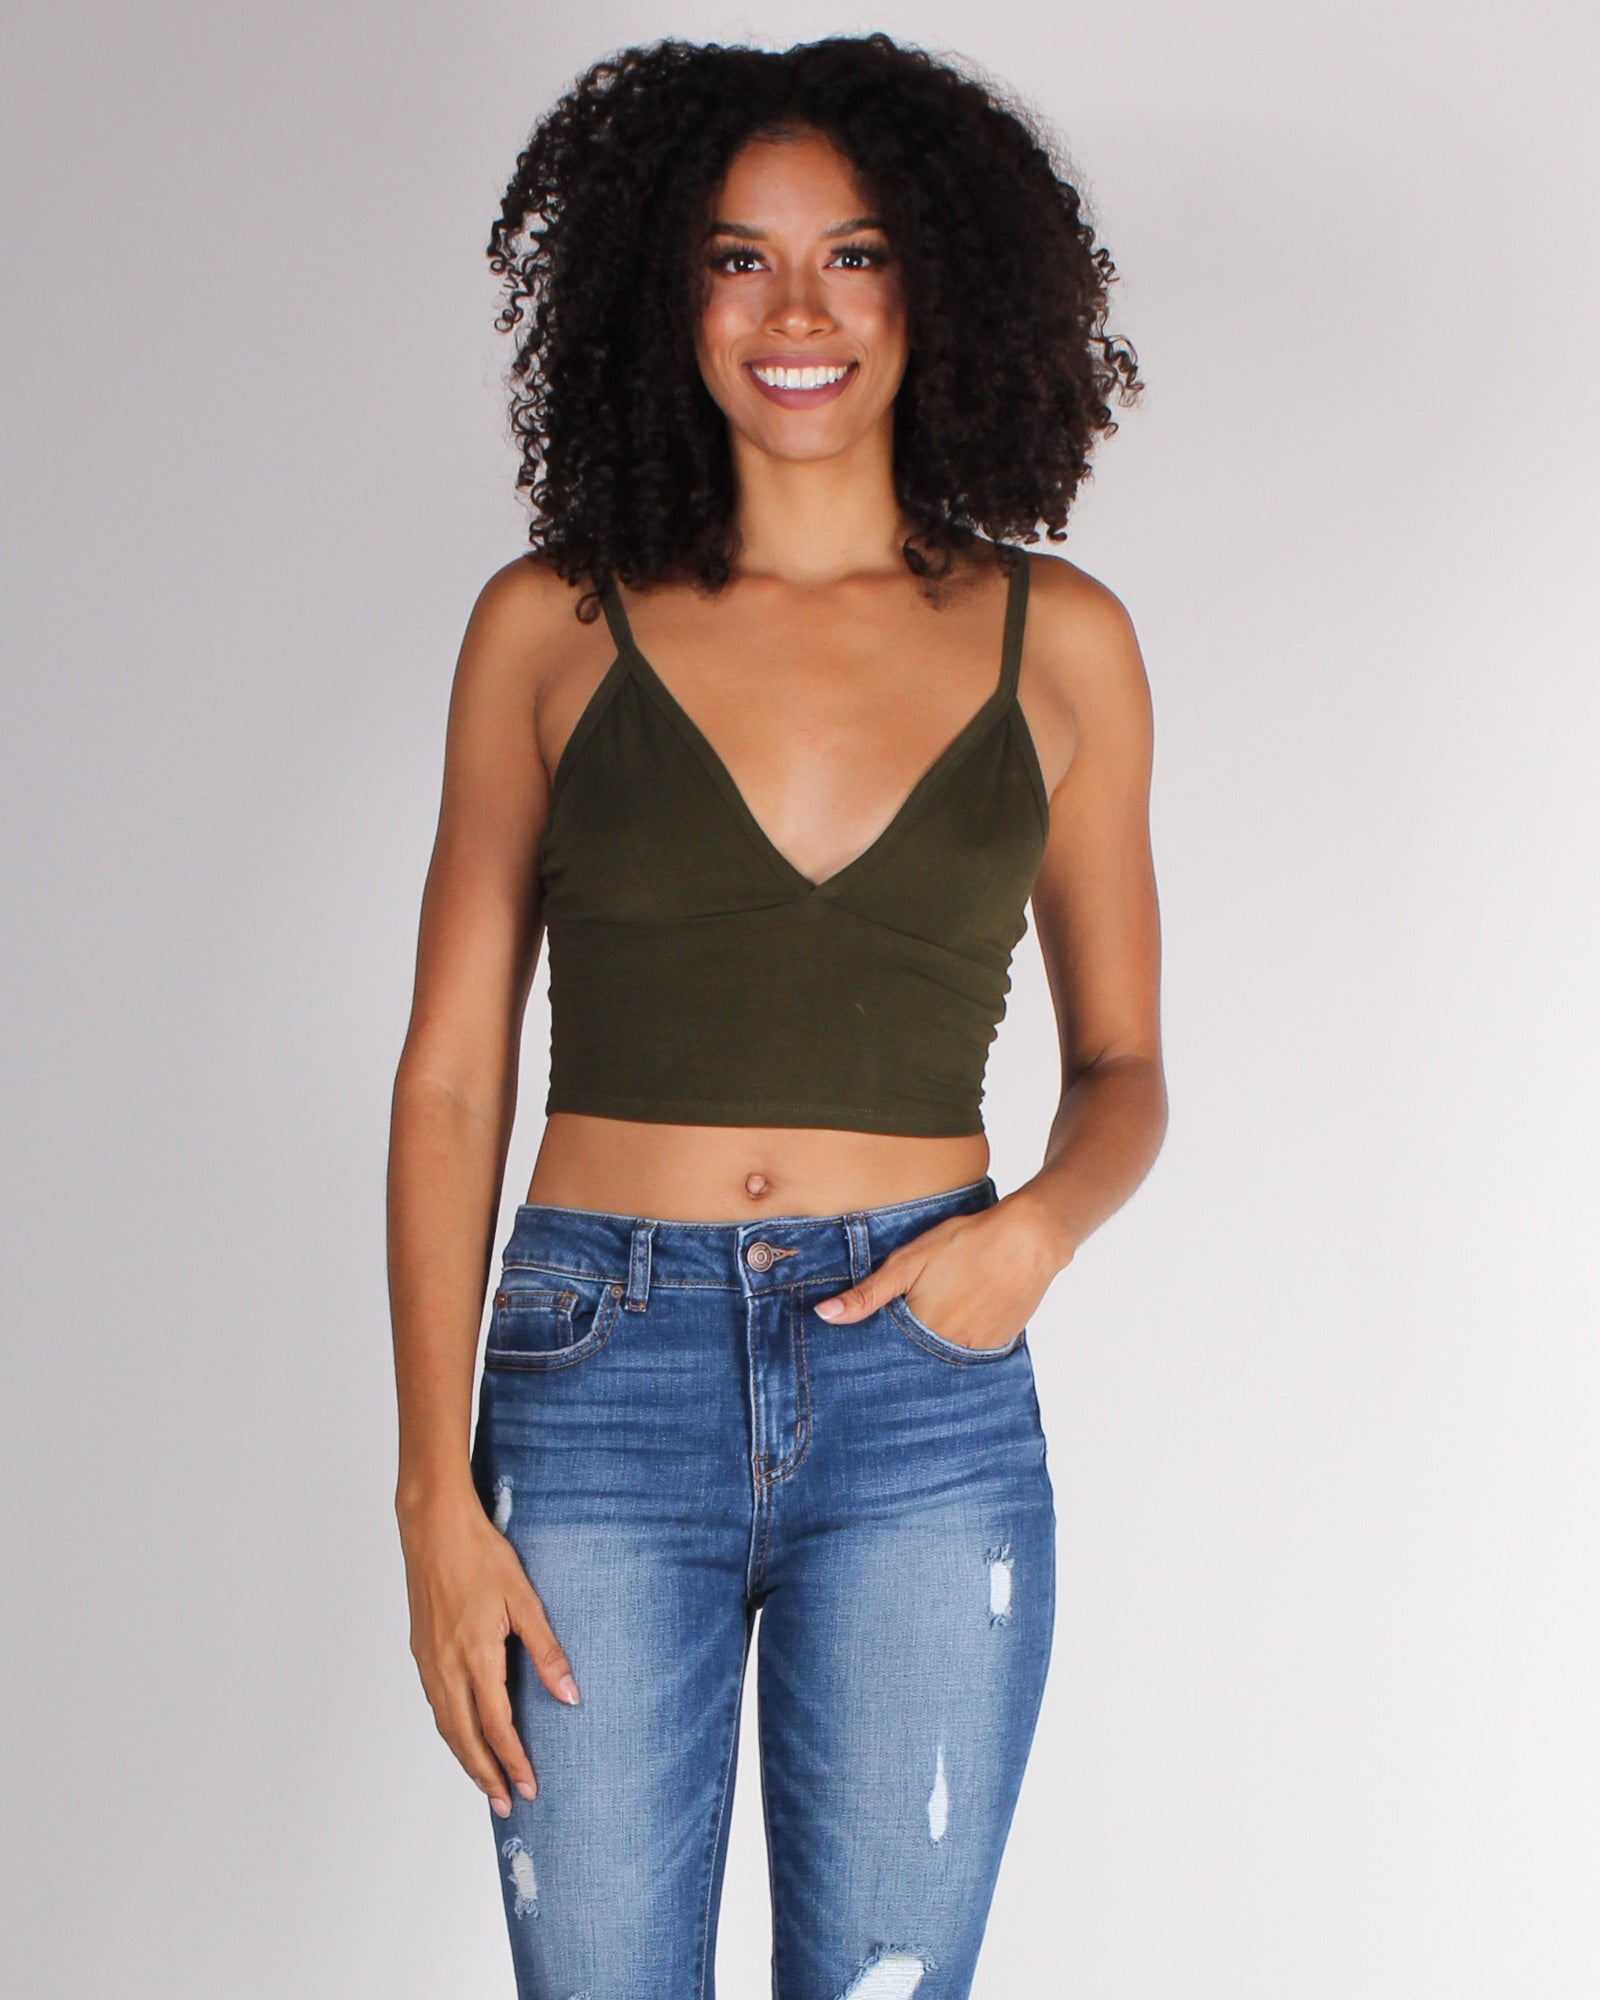 Fashion Q Shop Q Take Me as I Am Crop Top (Olive) RT52124